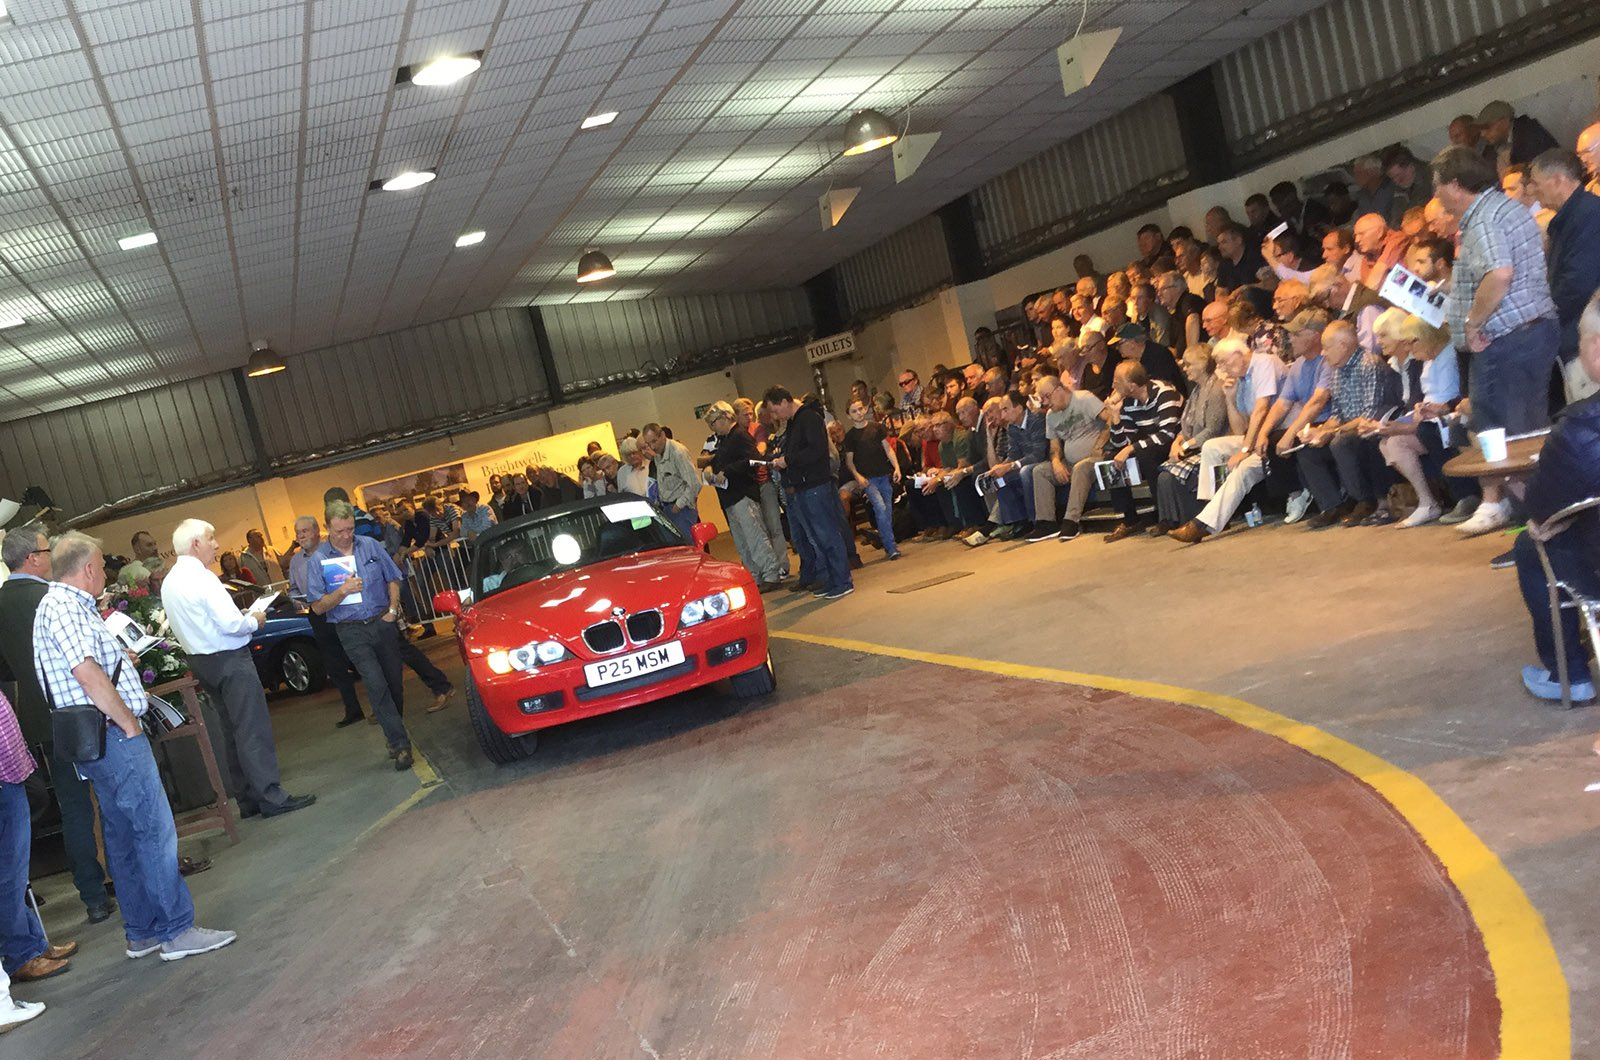 Red BMW Z3 being auctioned off